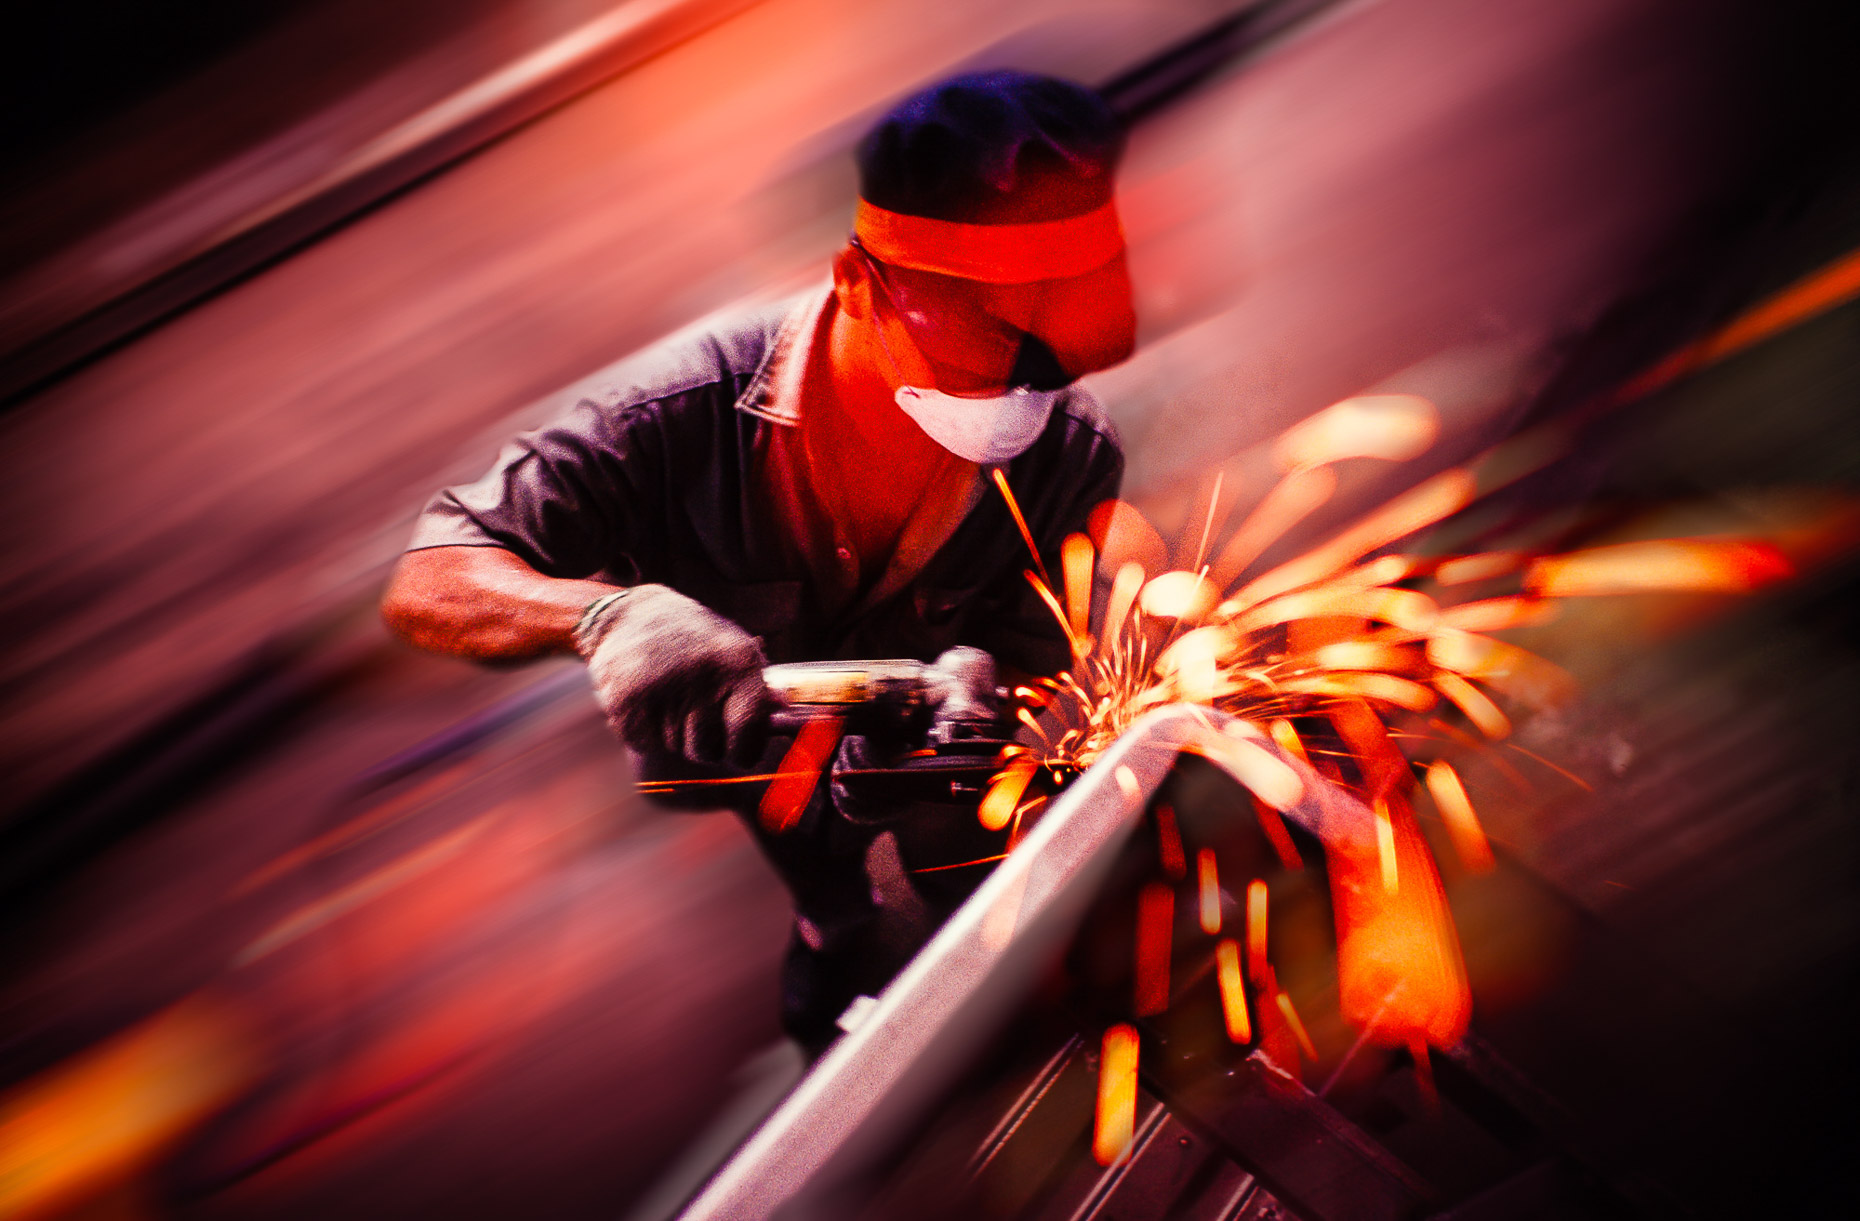 Working People On Site | Industrial Welder Construction  | Seattle Photographer Jed Share